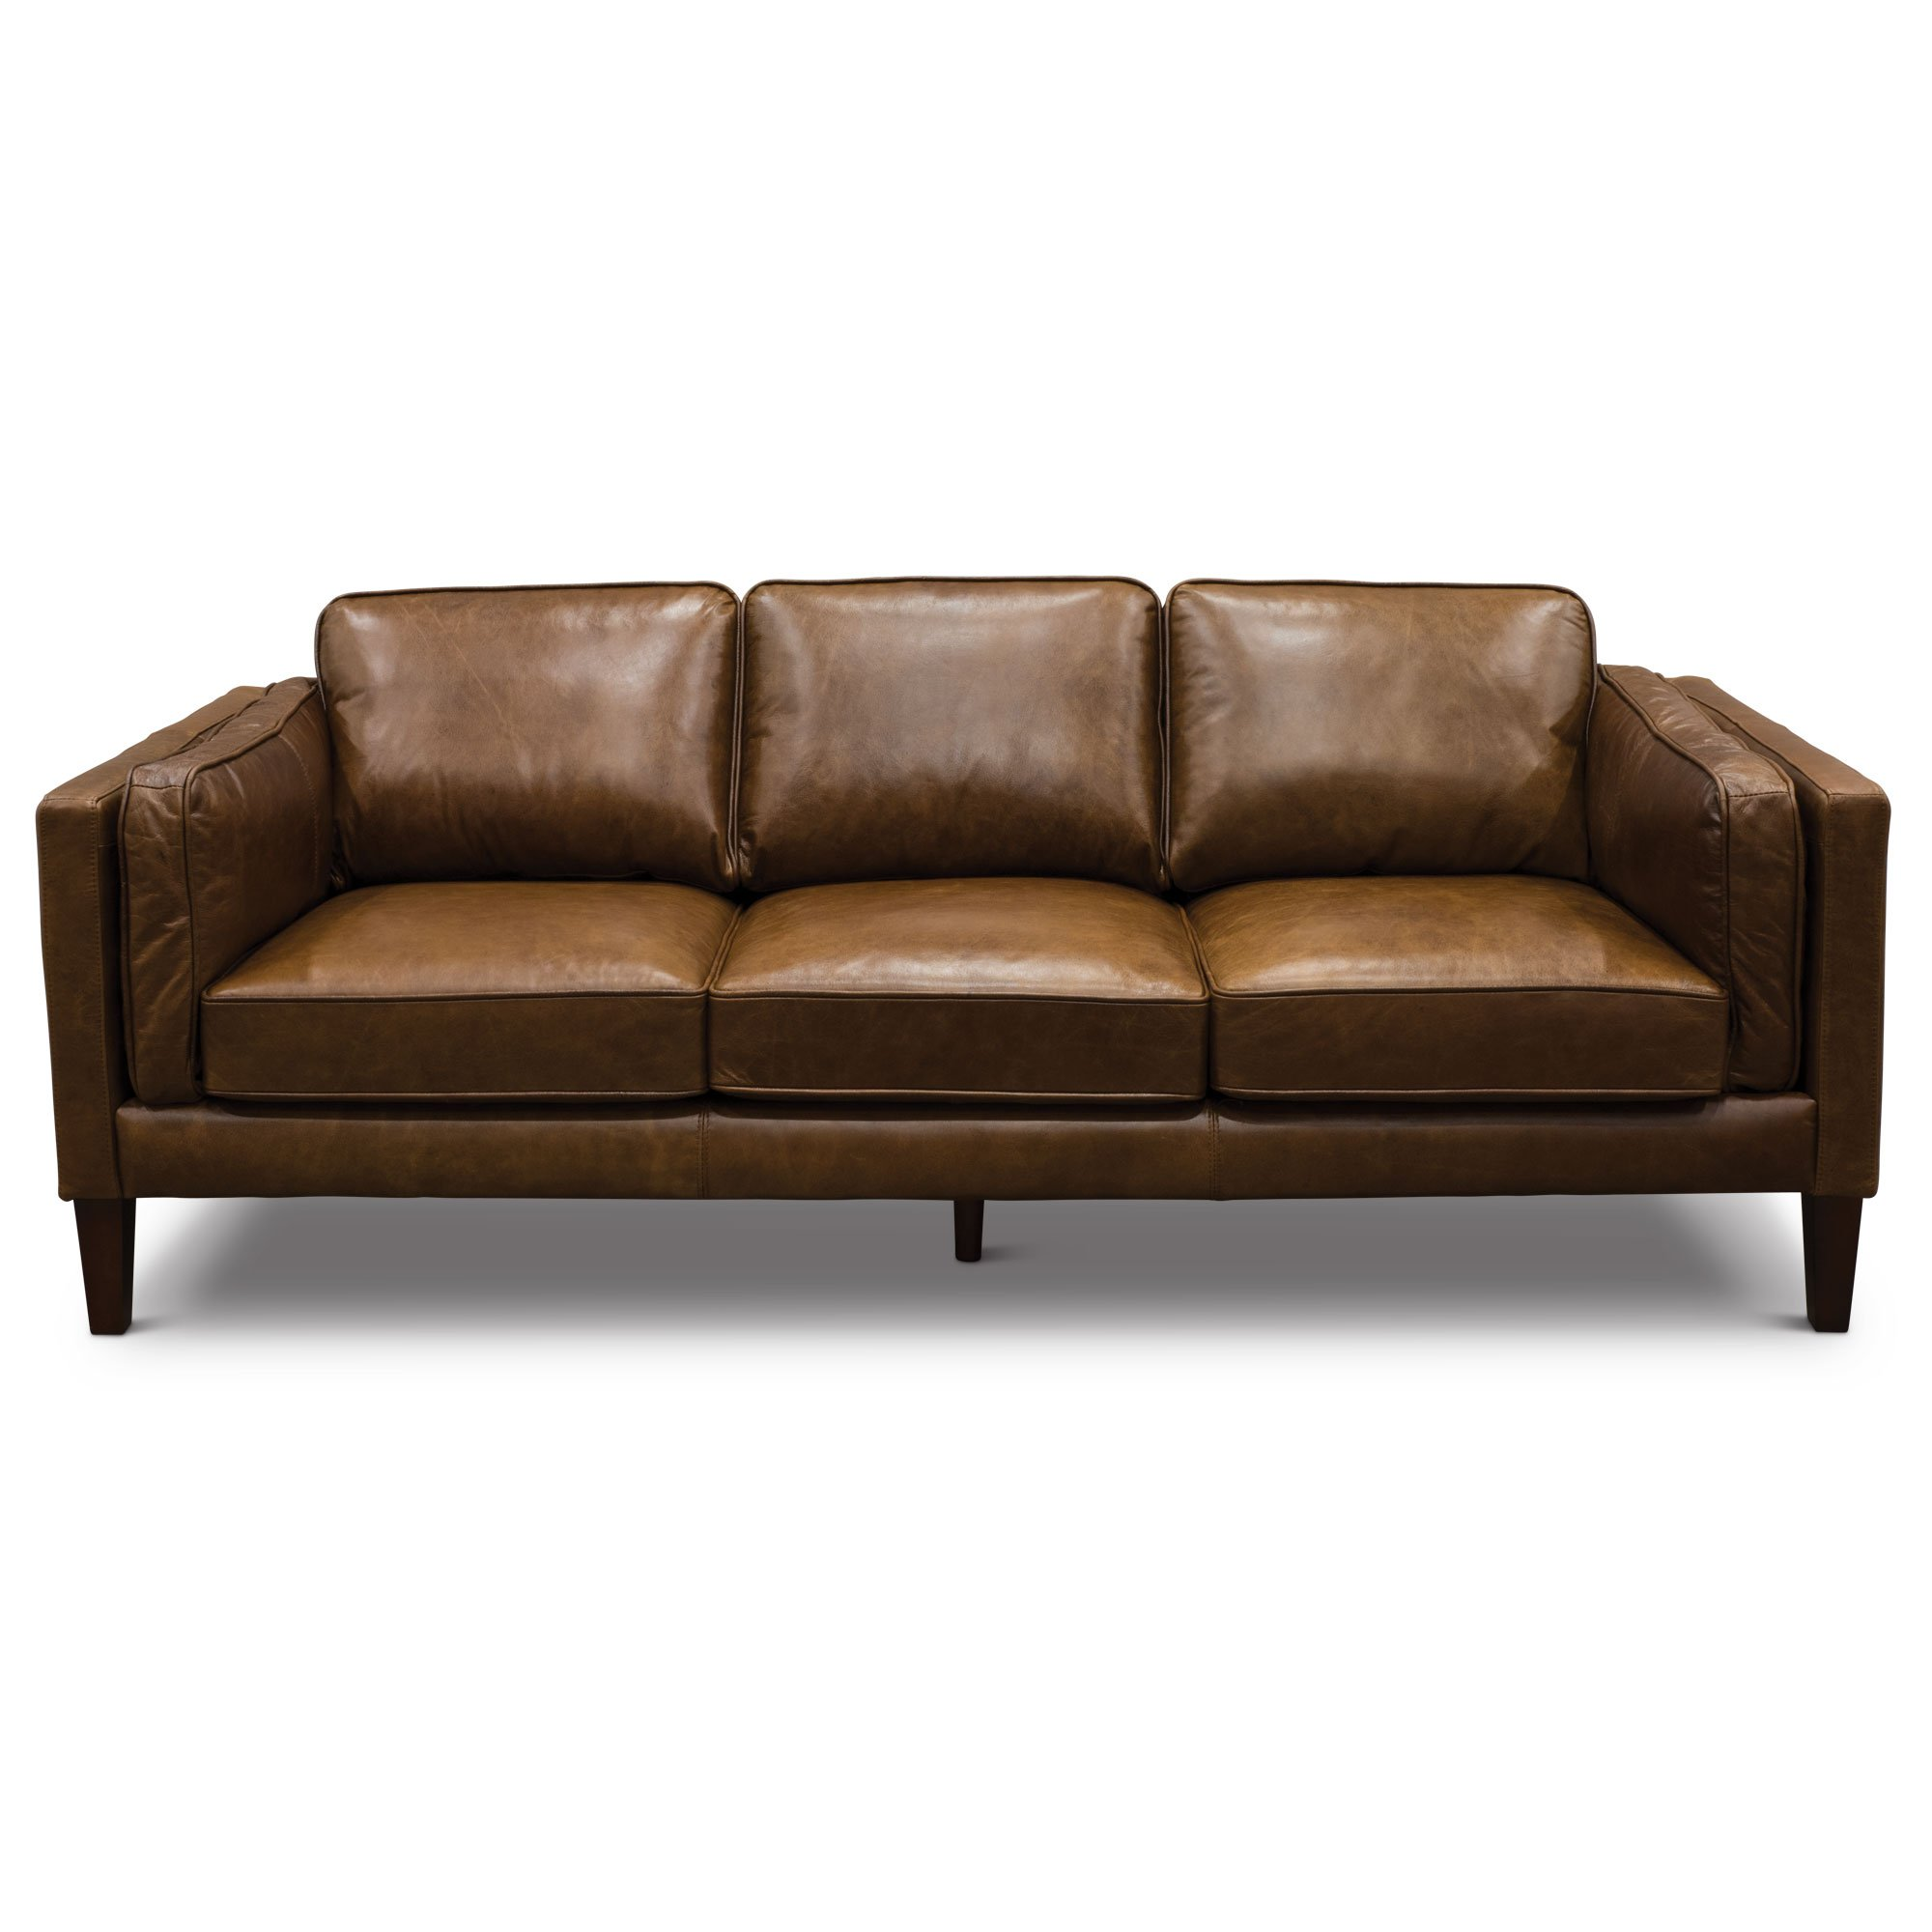 Modern Classic Cocoa Brown Leather Sofa Brompton